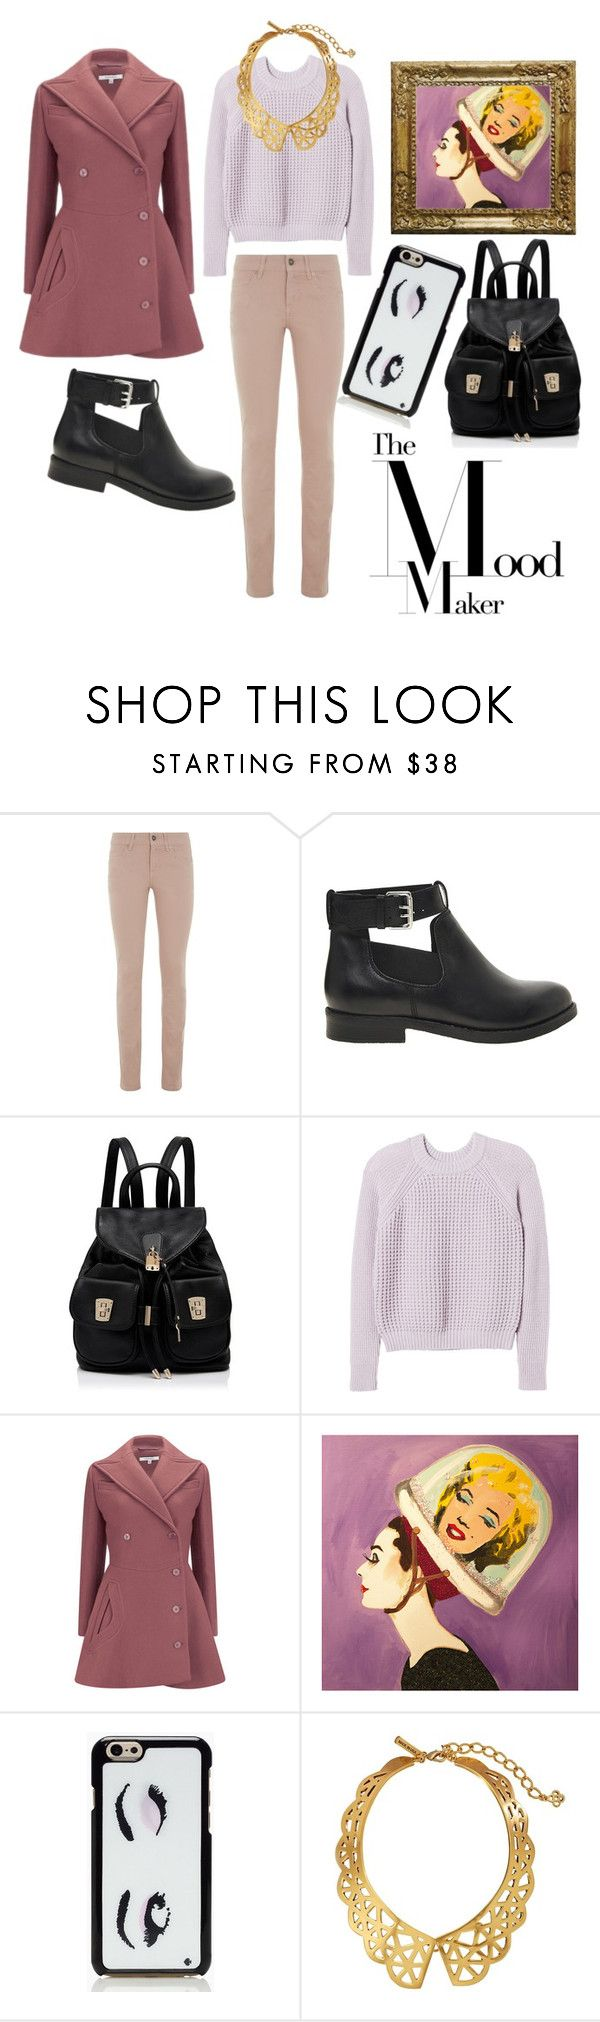 """""""Monday"""" by fakebrunette ❤ liked on Polyvore featuring Escada Sport, ASOS, Forever New, Rebecca Taylor, Carven, Ashley Longshore, Kate Spade, Oscar de la Renta, Winter and ootd"""